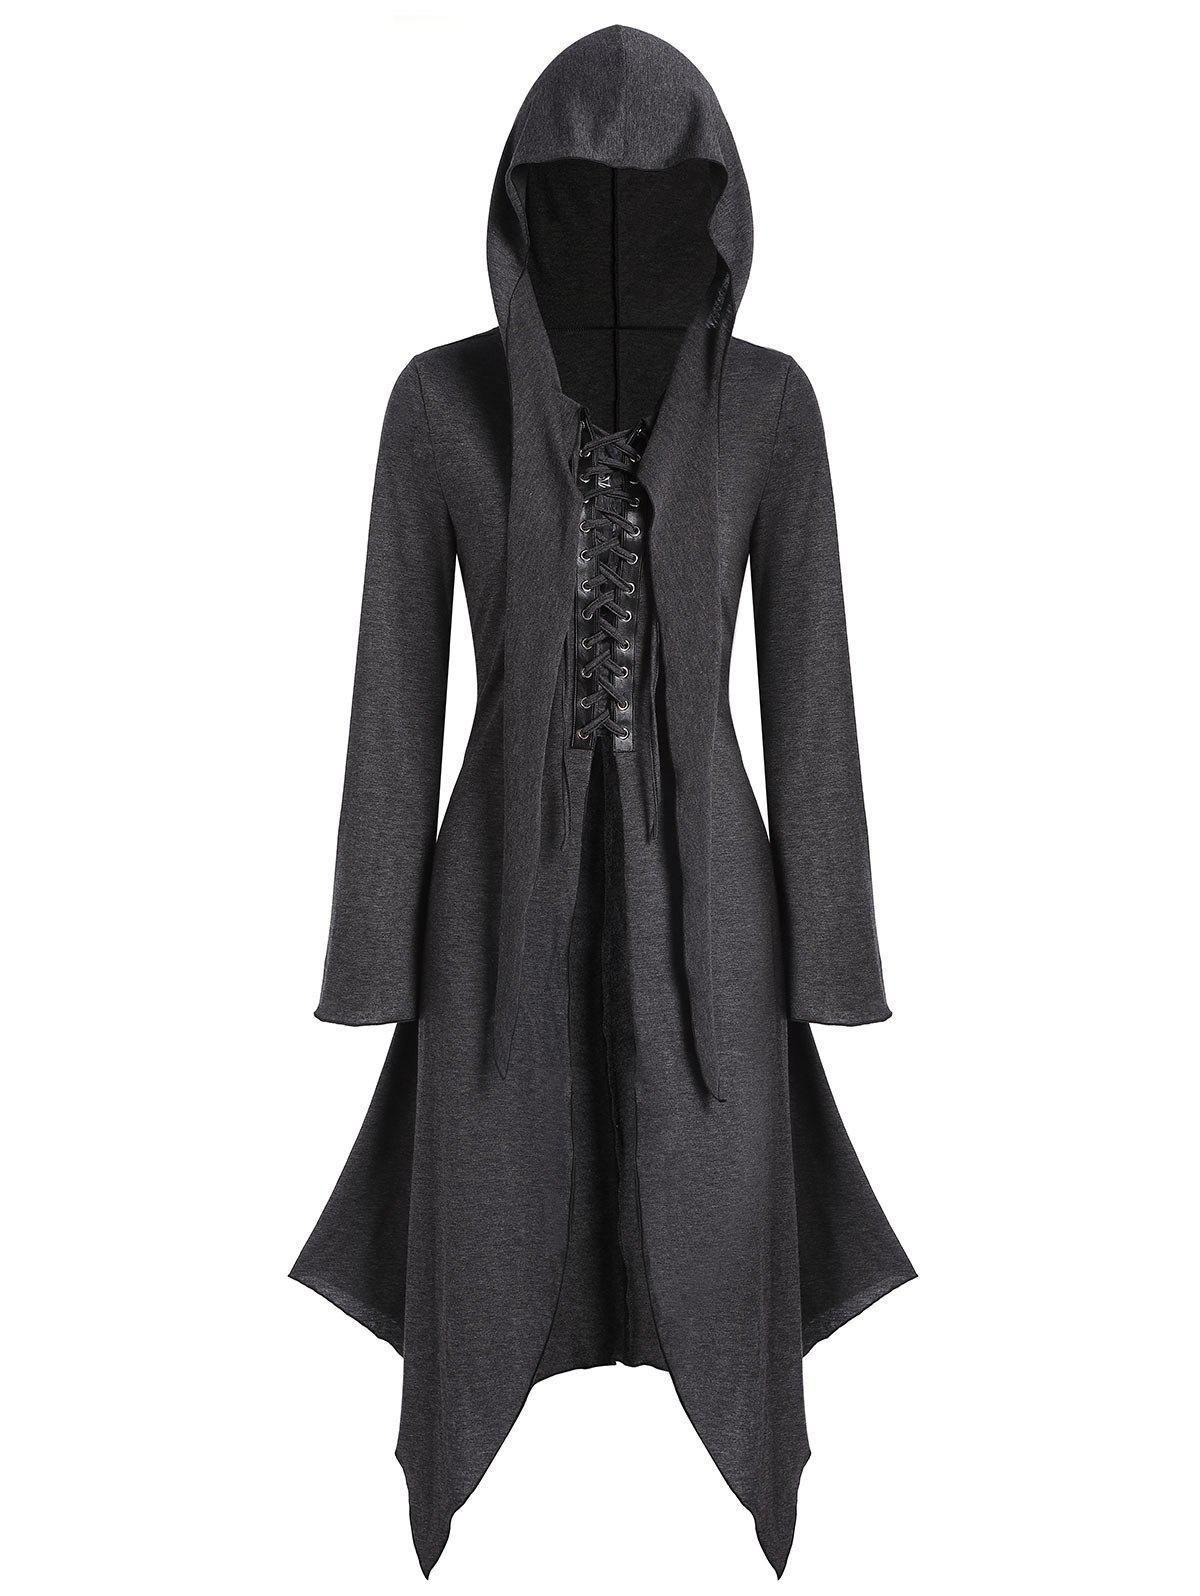 Hooded Lace-up Front Heathered Handkerchief Skirted Gothic Coat - CARBON GRAY XL